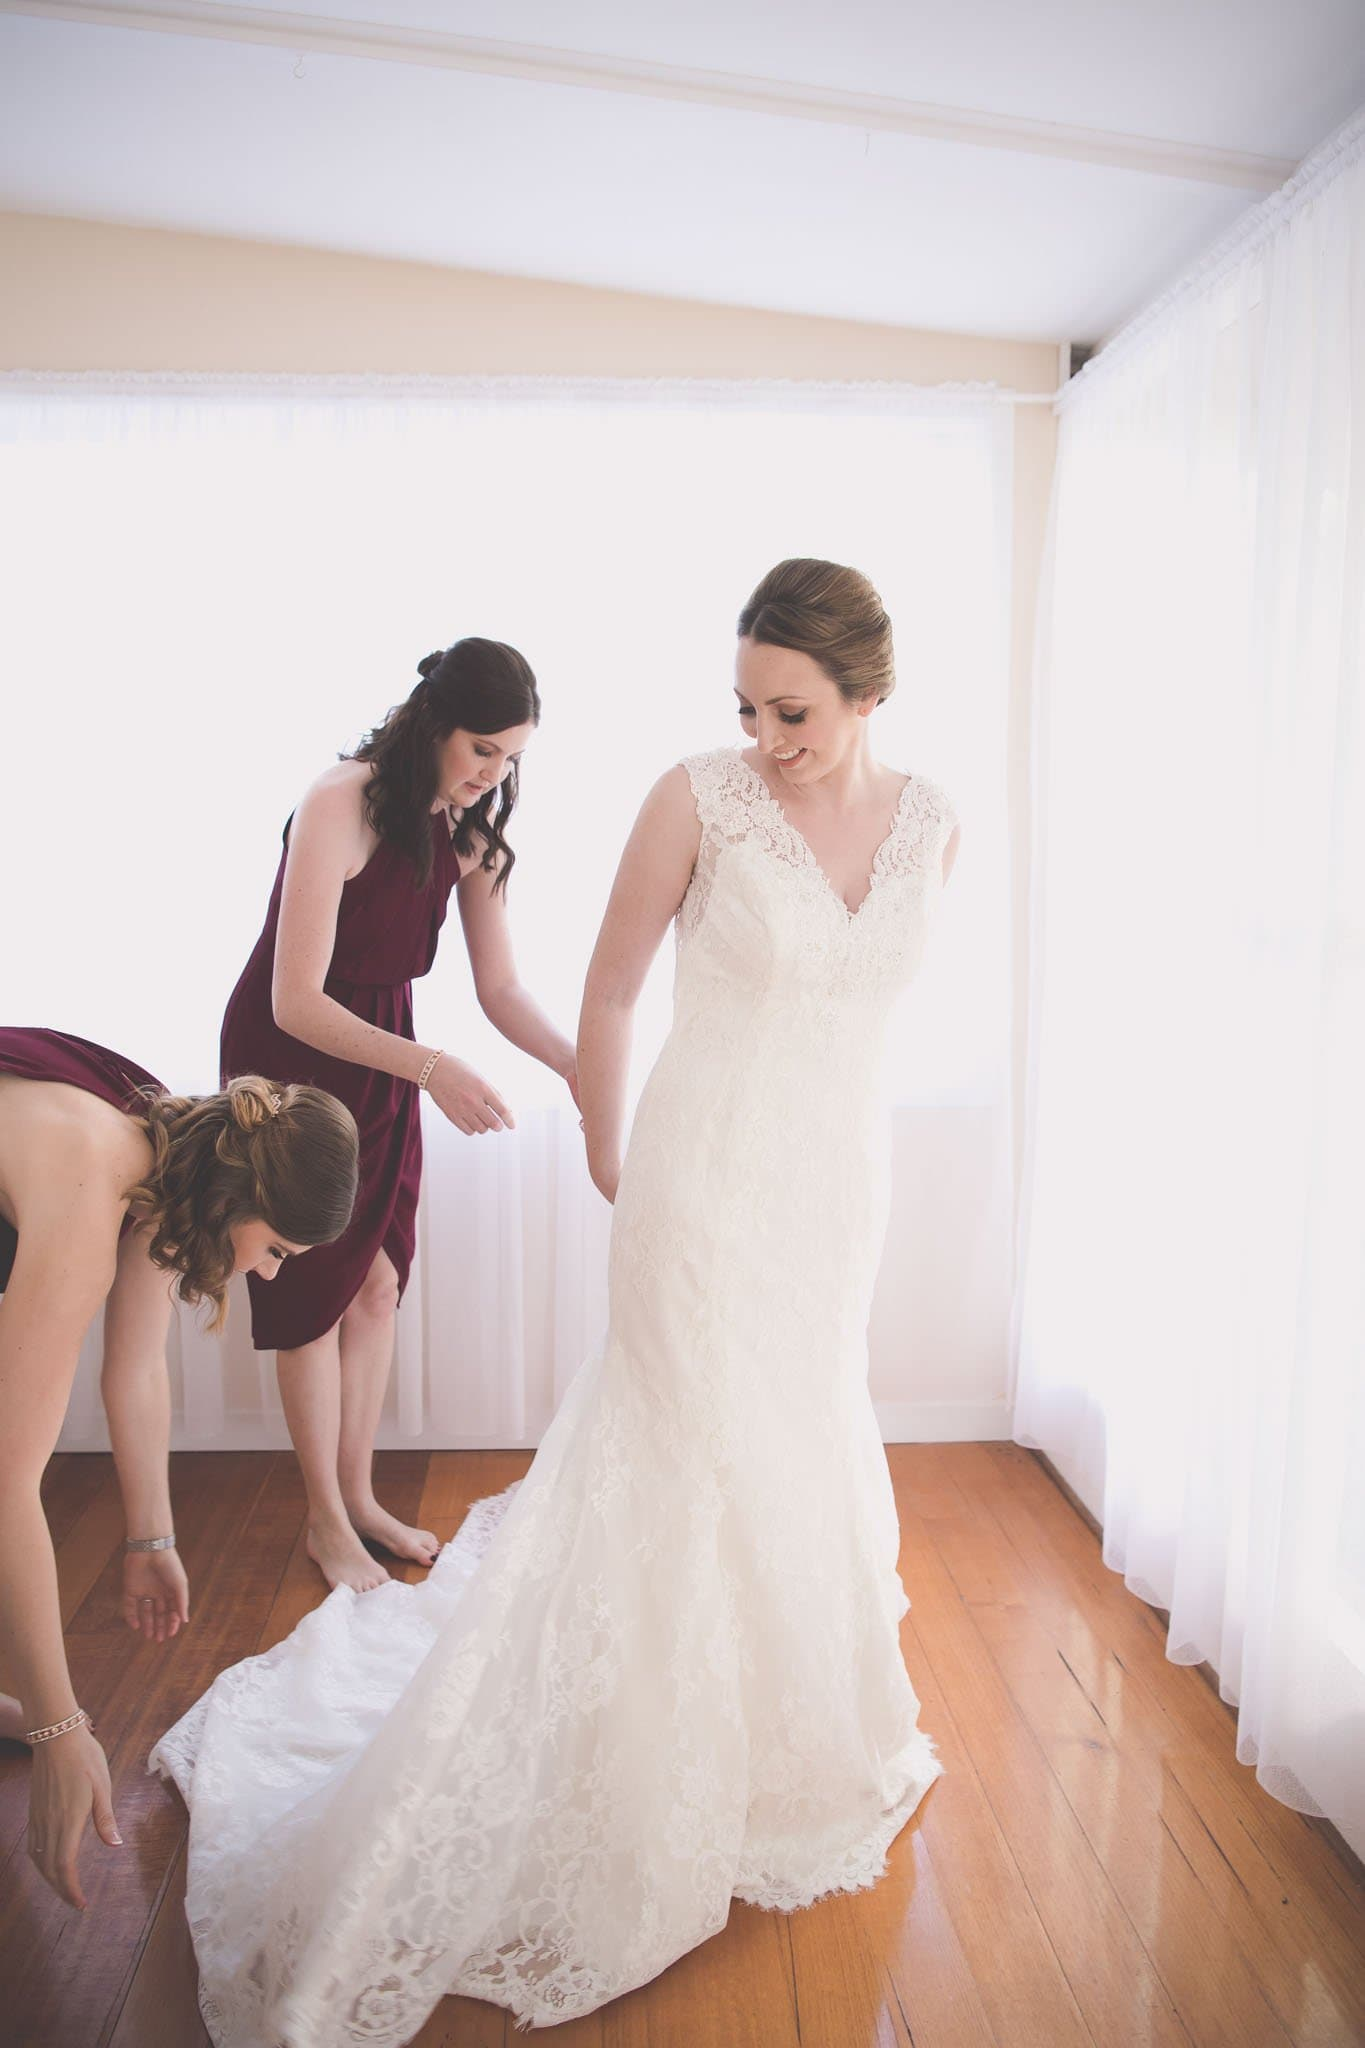 Melbourne wedding photography of the bride being helped into her dress